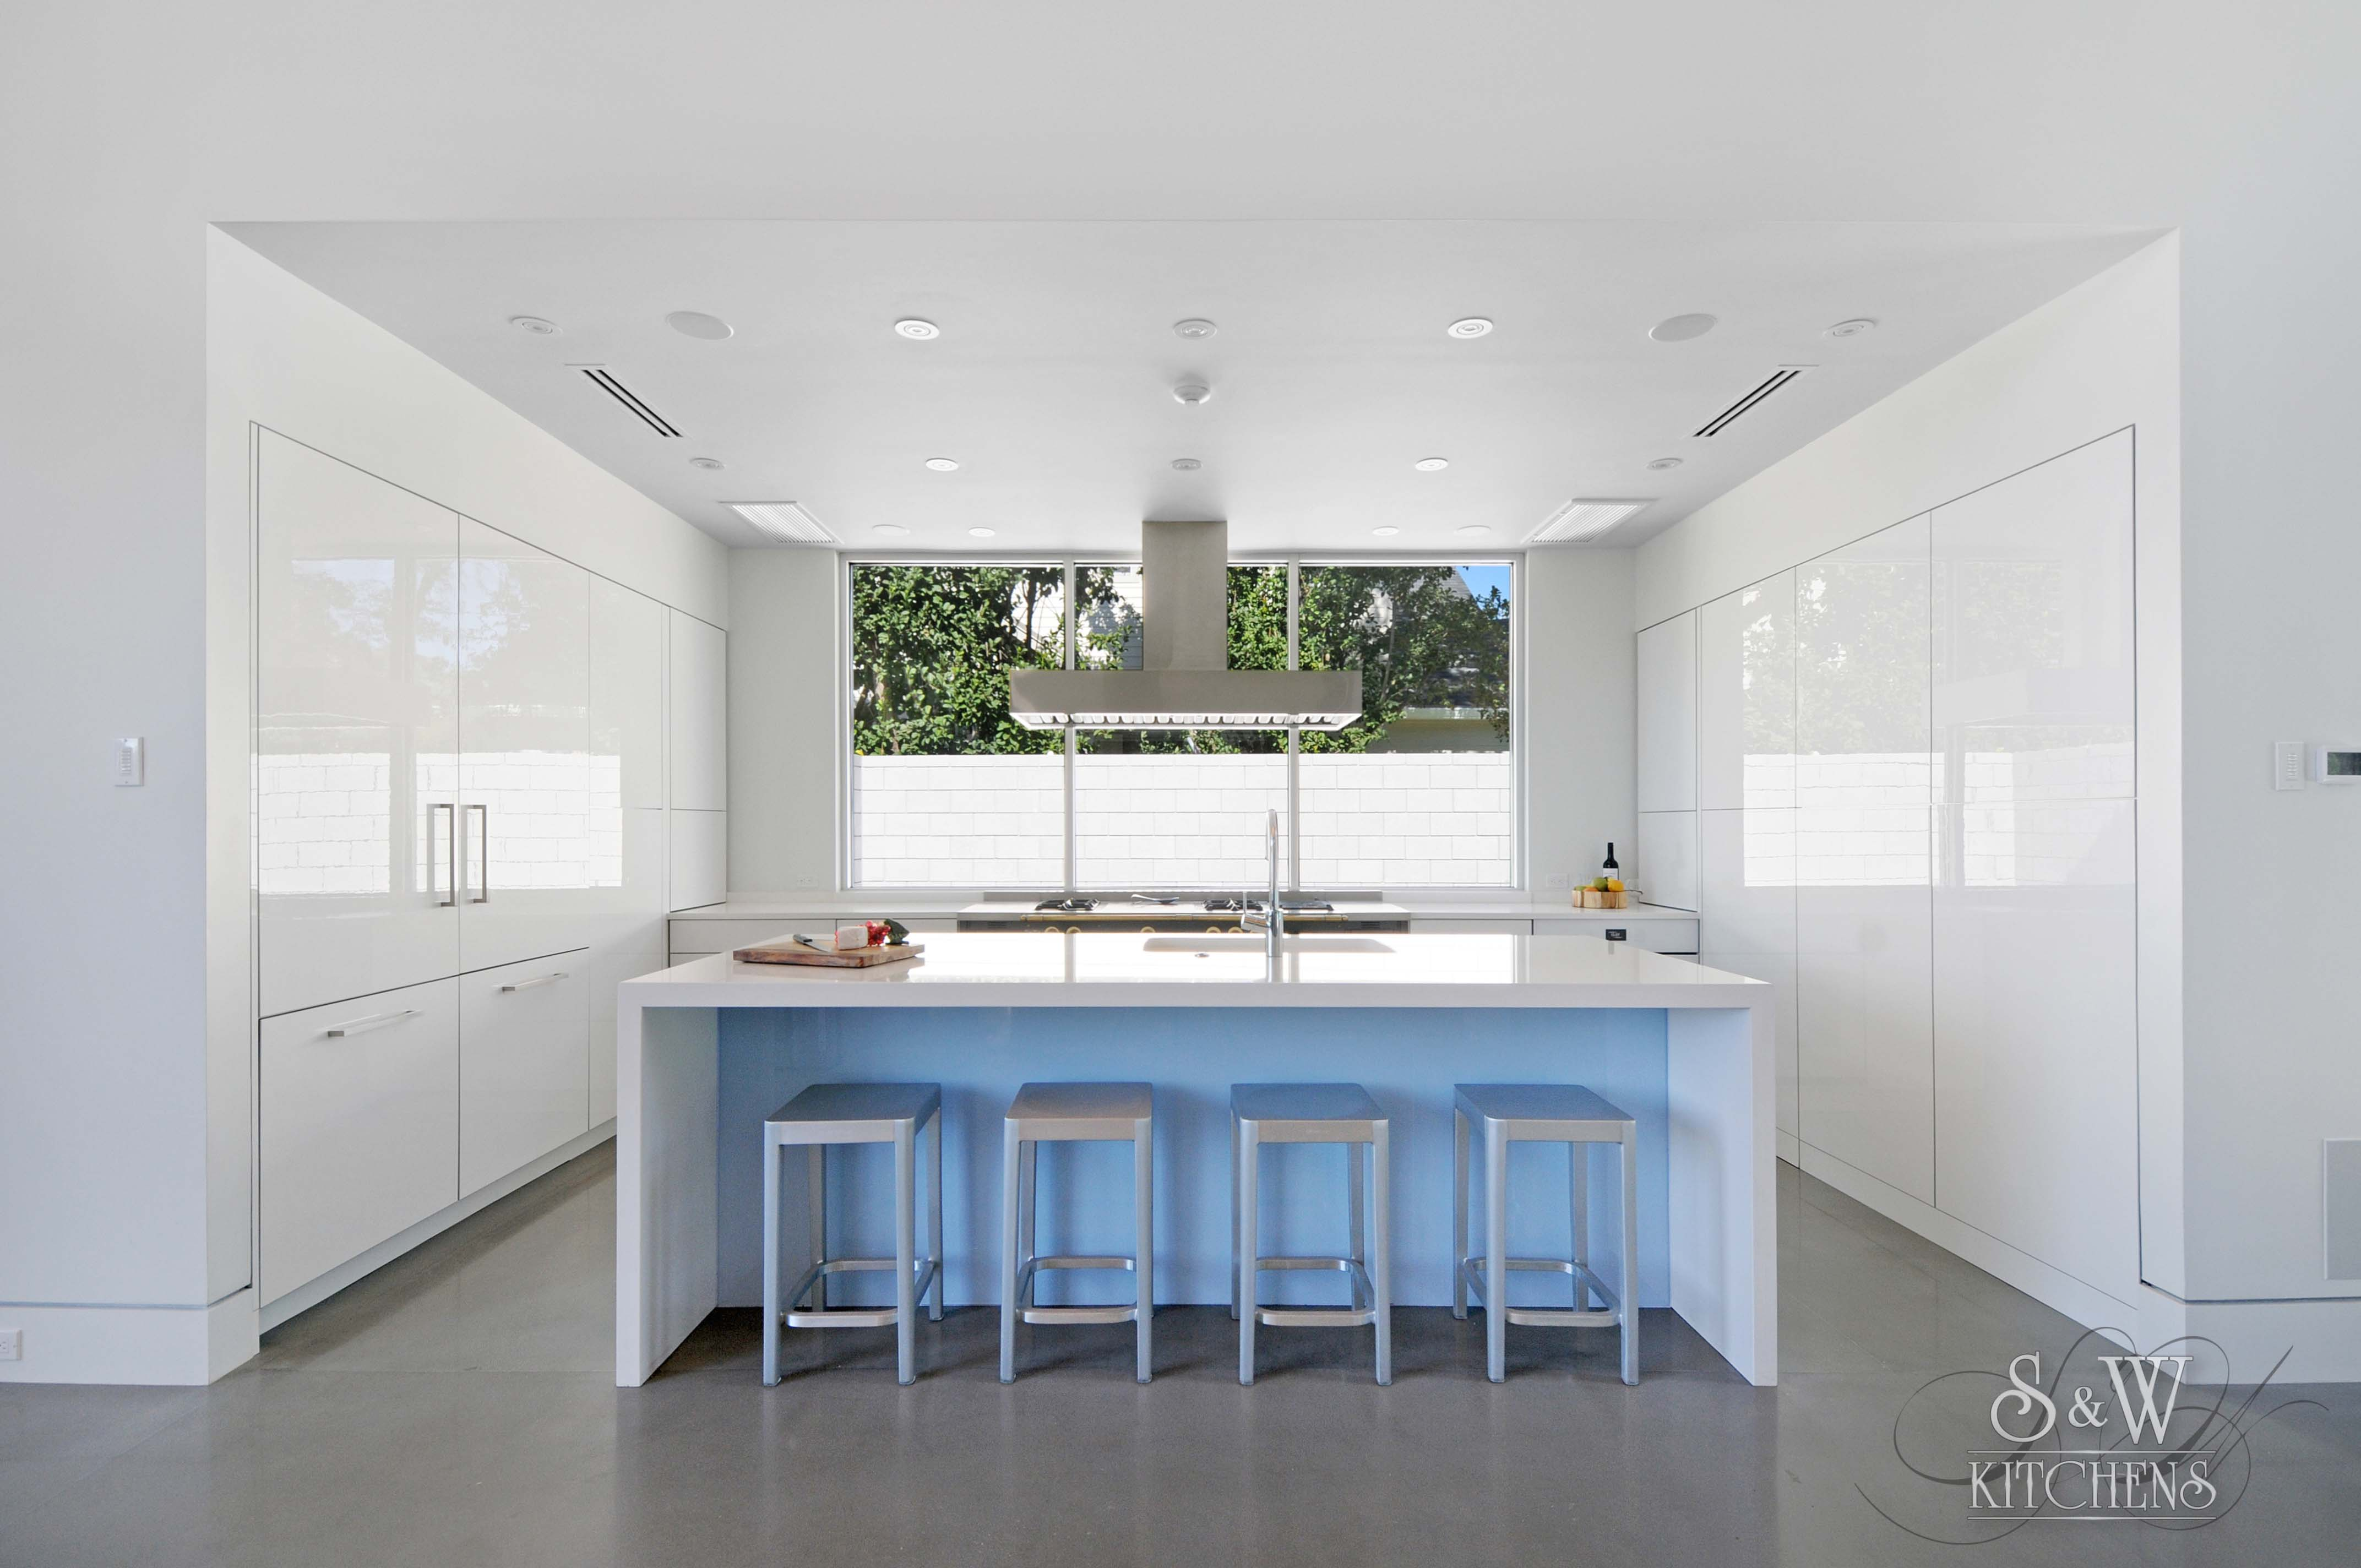 Clark_Kitchen_002.jpg